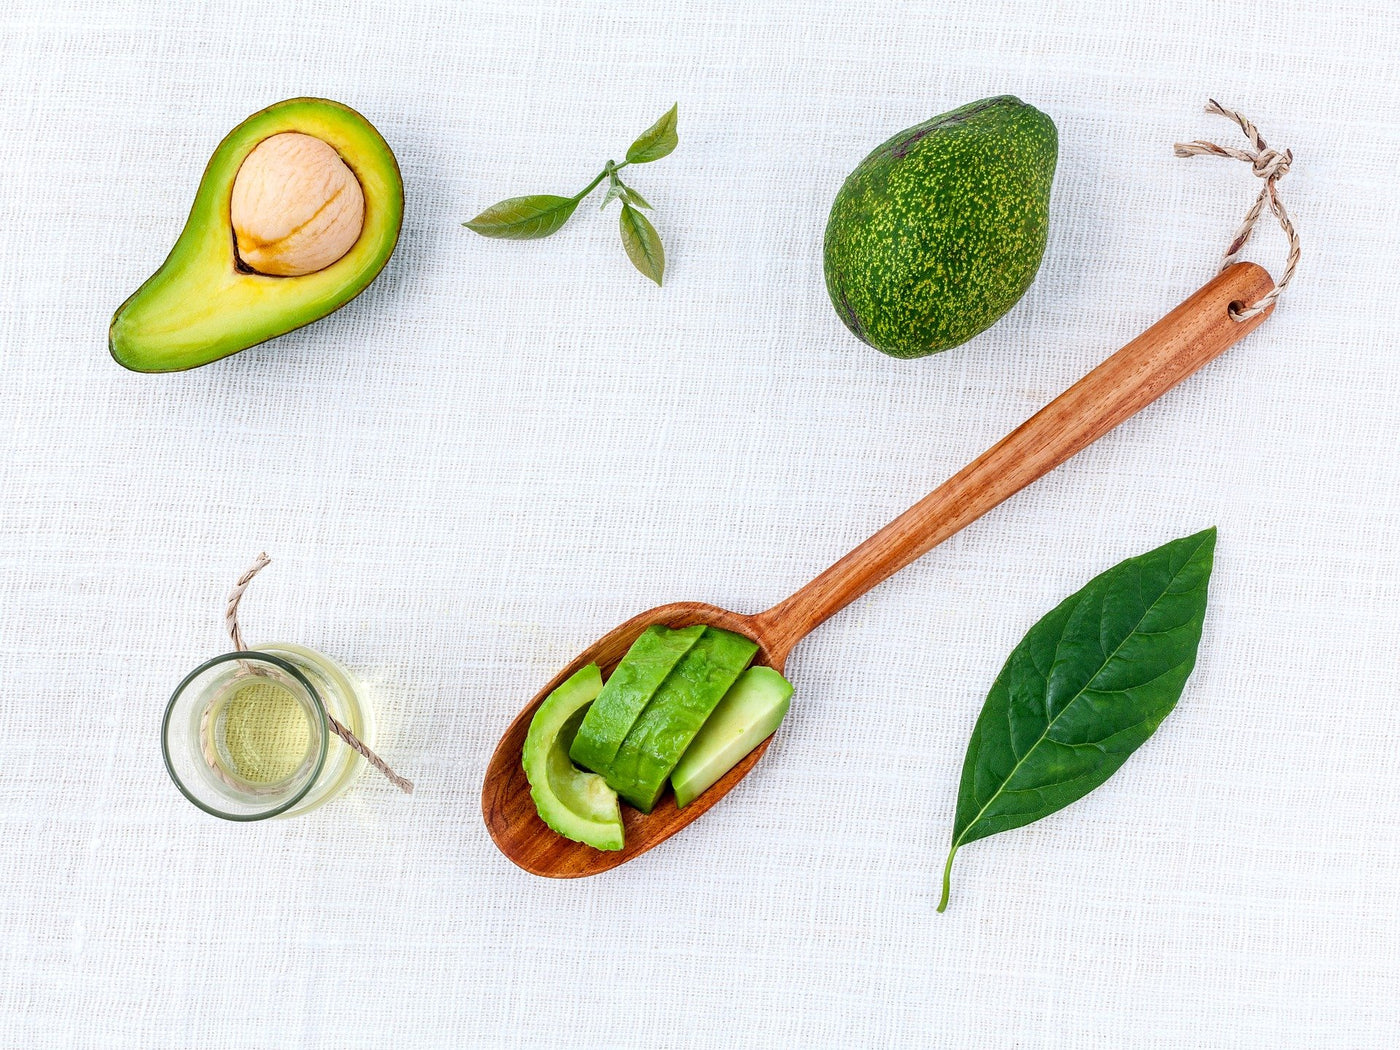 DYI Hair Mask for the #avocadolovers